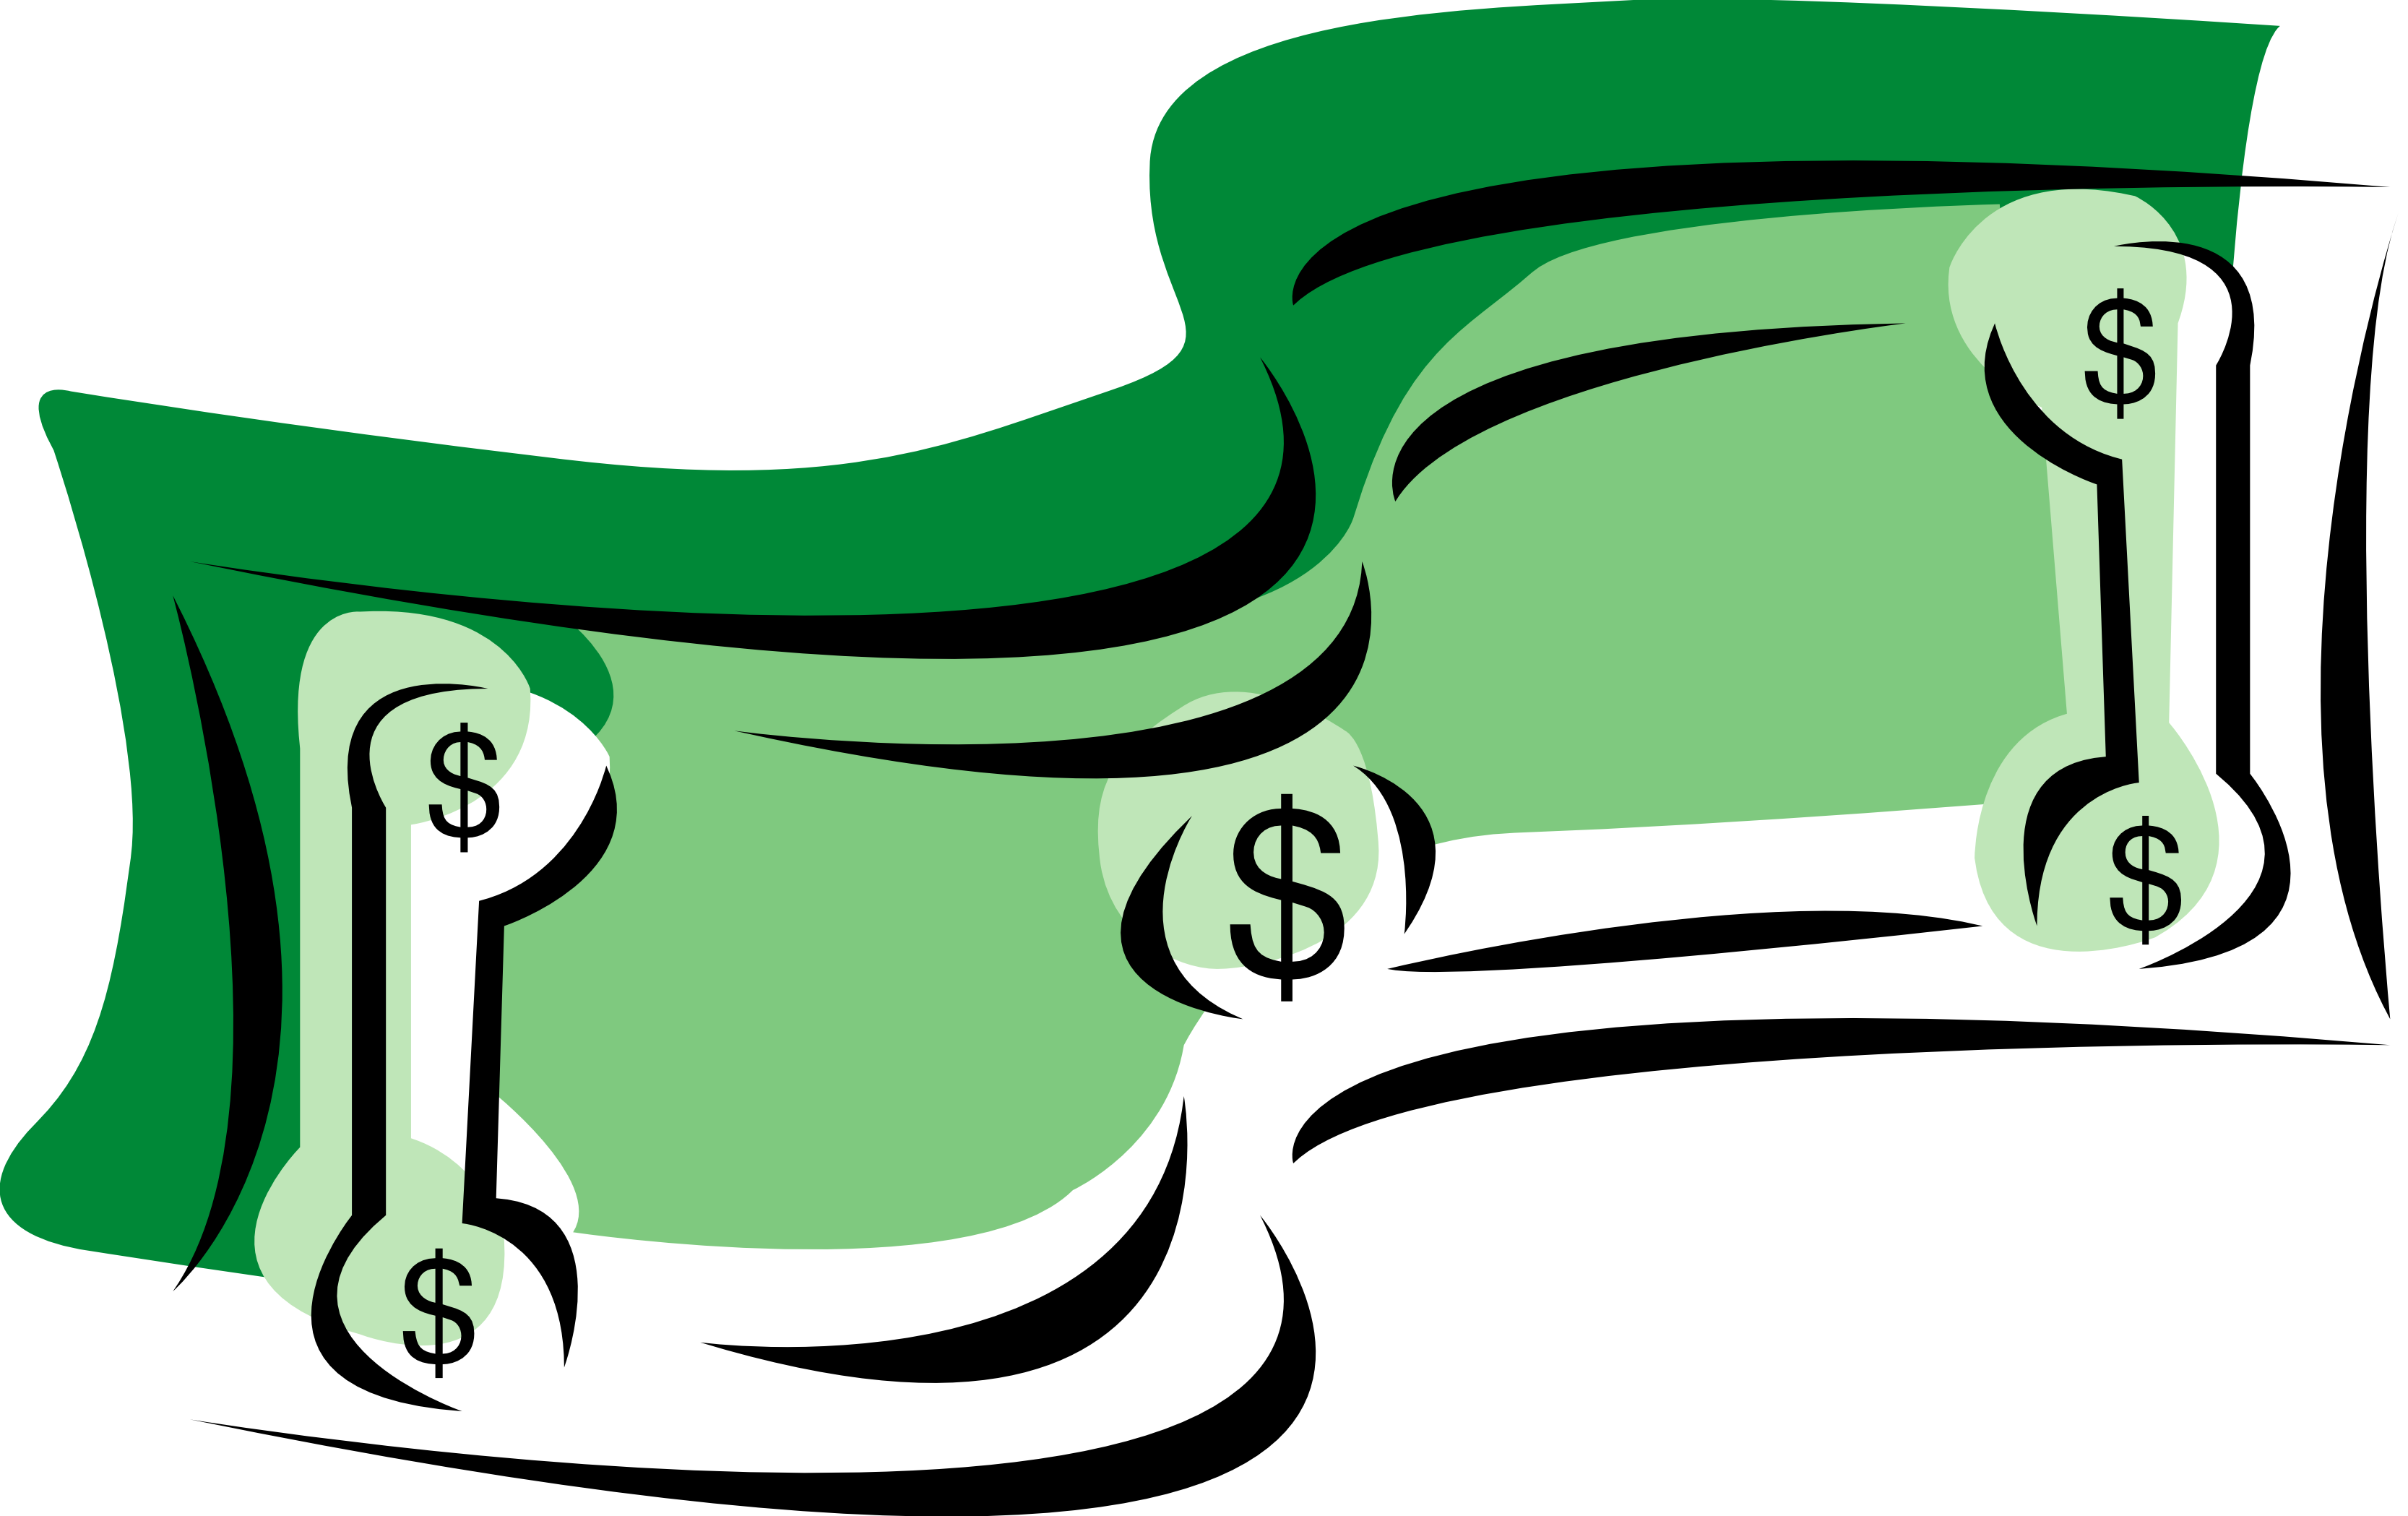 Free Dollars Cliparts, Download Free Clip Art, Free Clip Art.